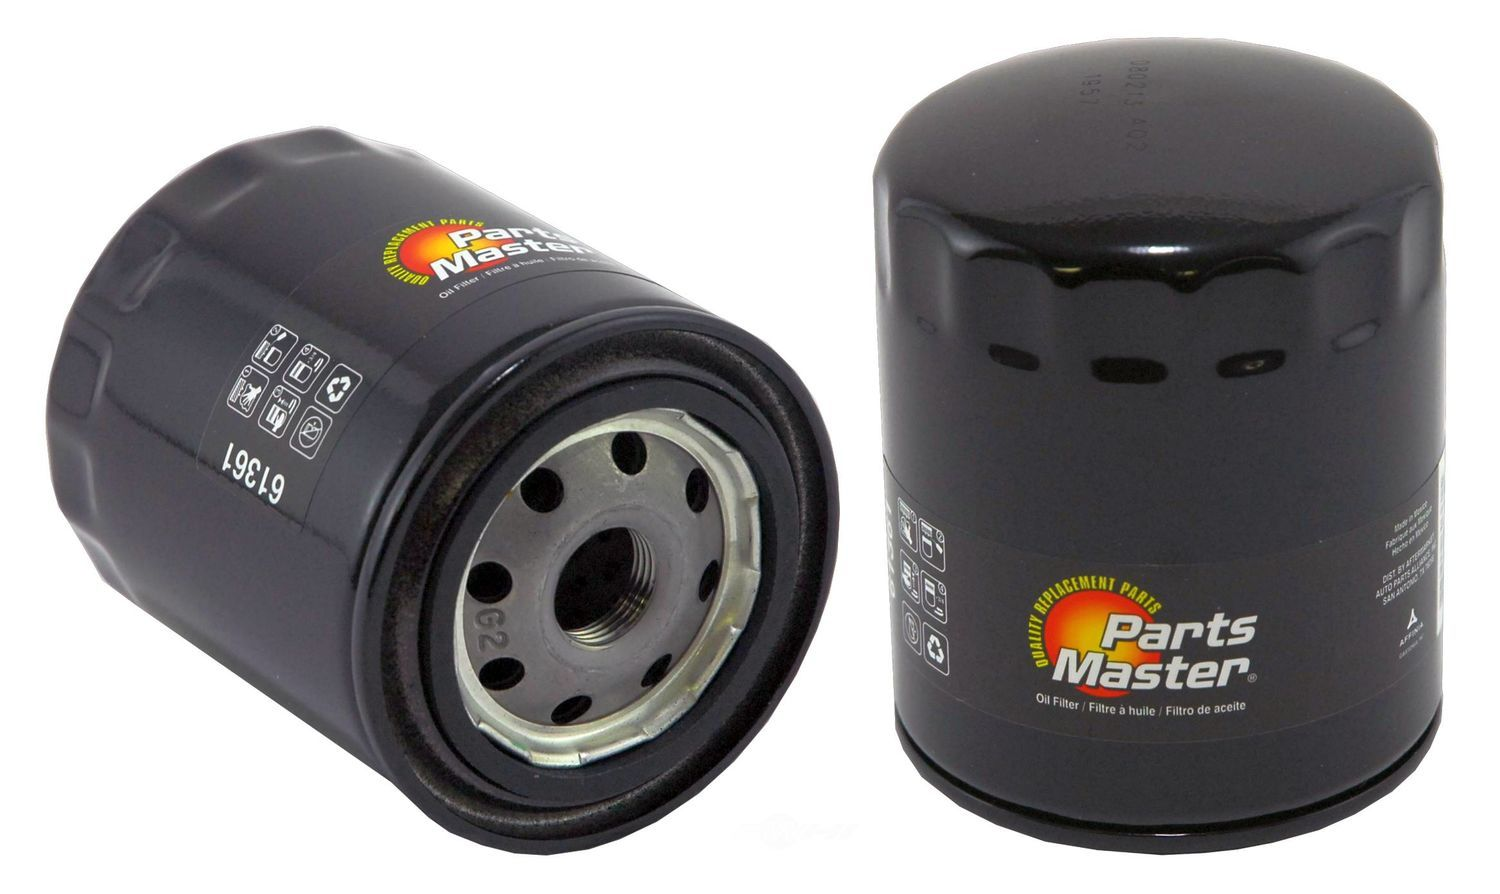 PARTS MASTER/WIX - Engine Oil Filter - P91 61361